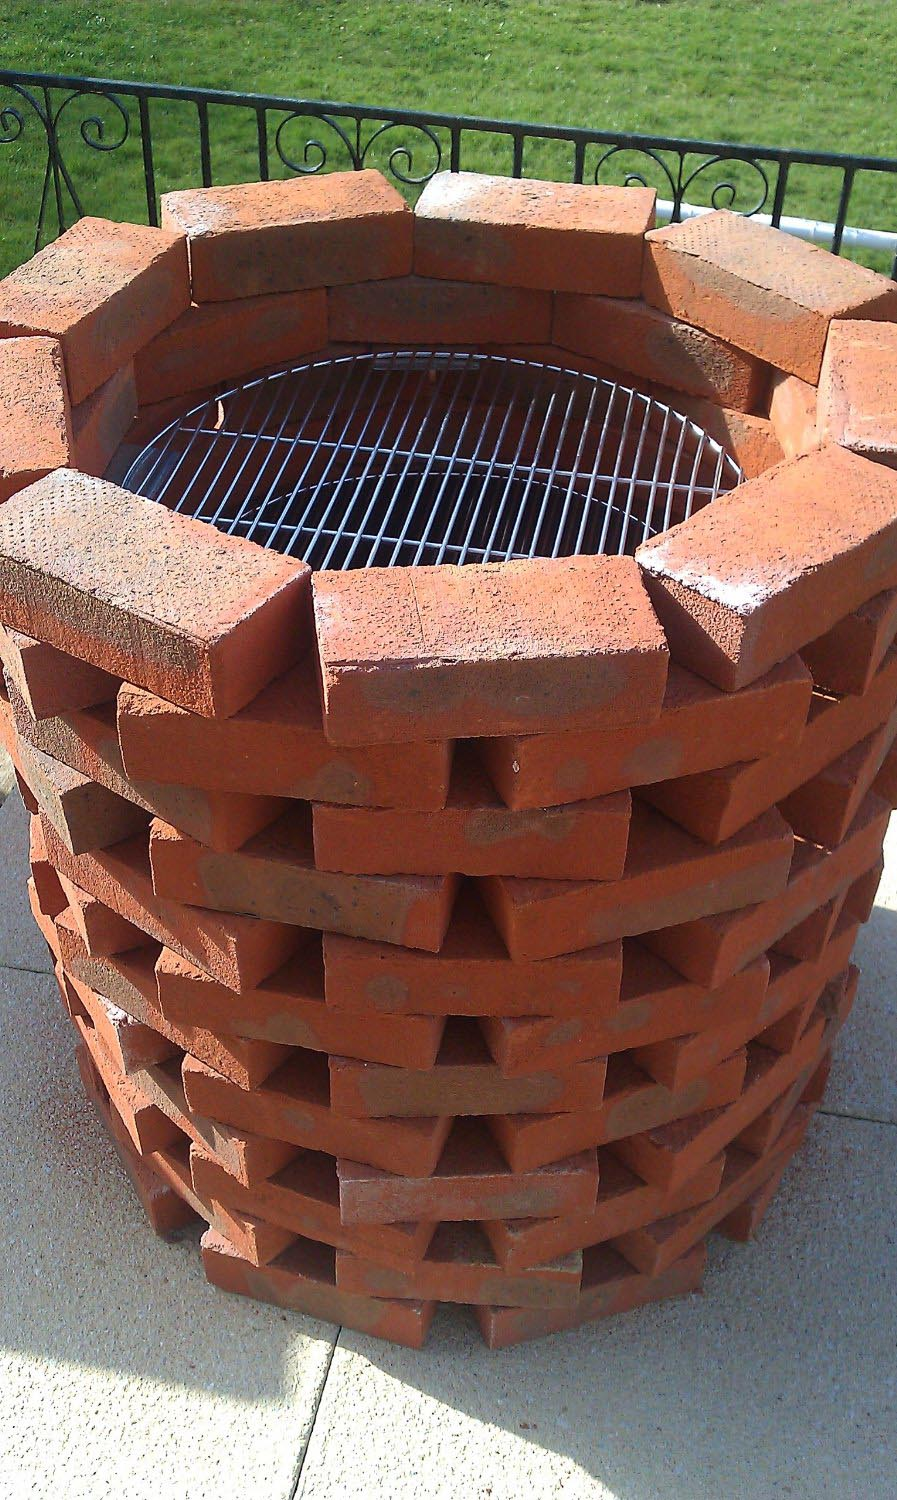 Brick bbq grill kits fire pit design ideas for Bbq grill designs and plans